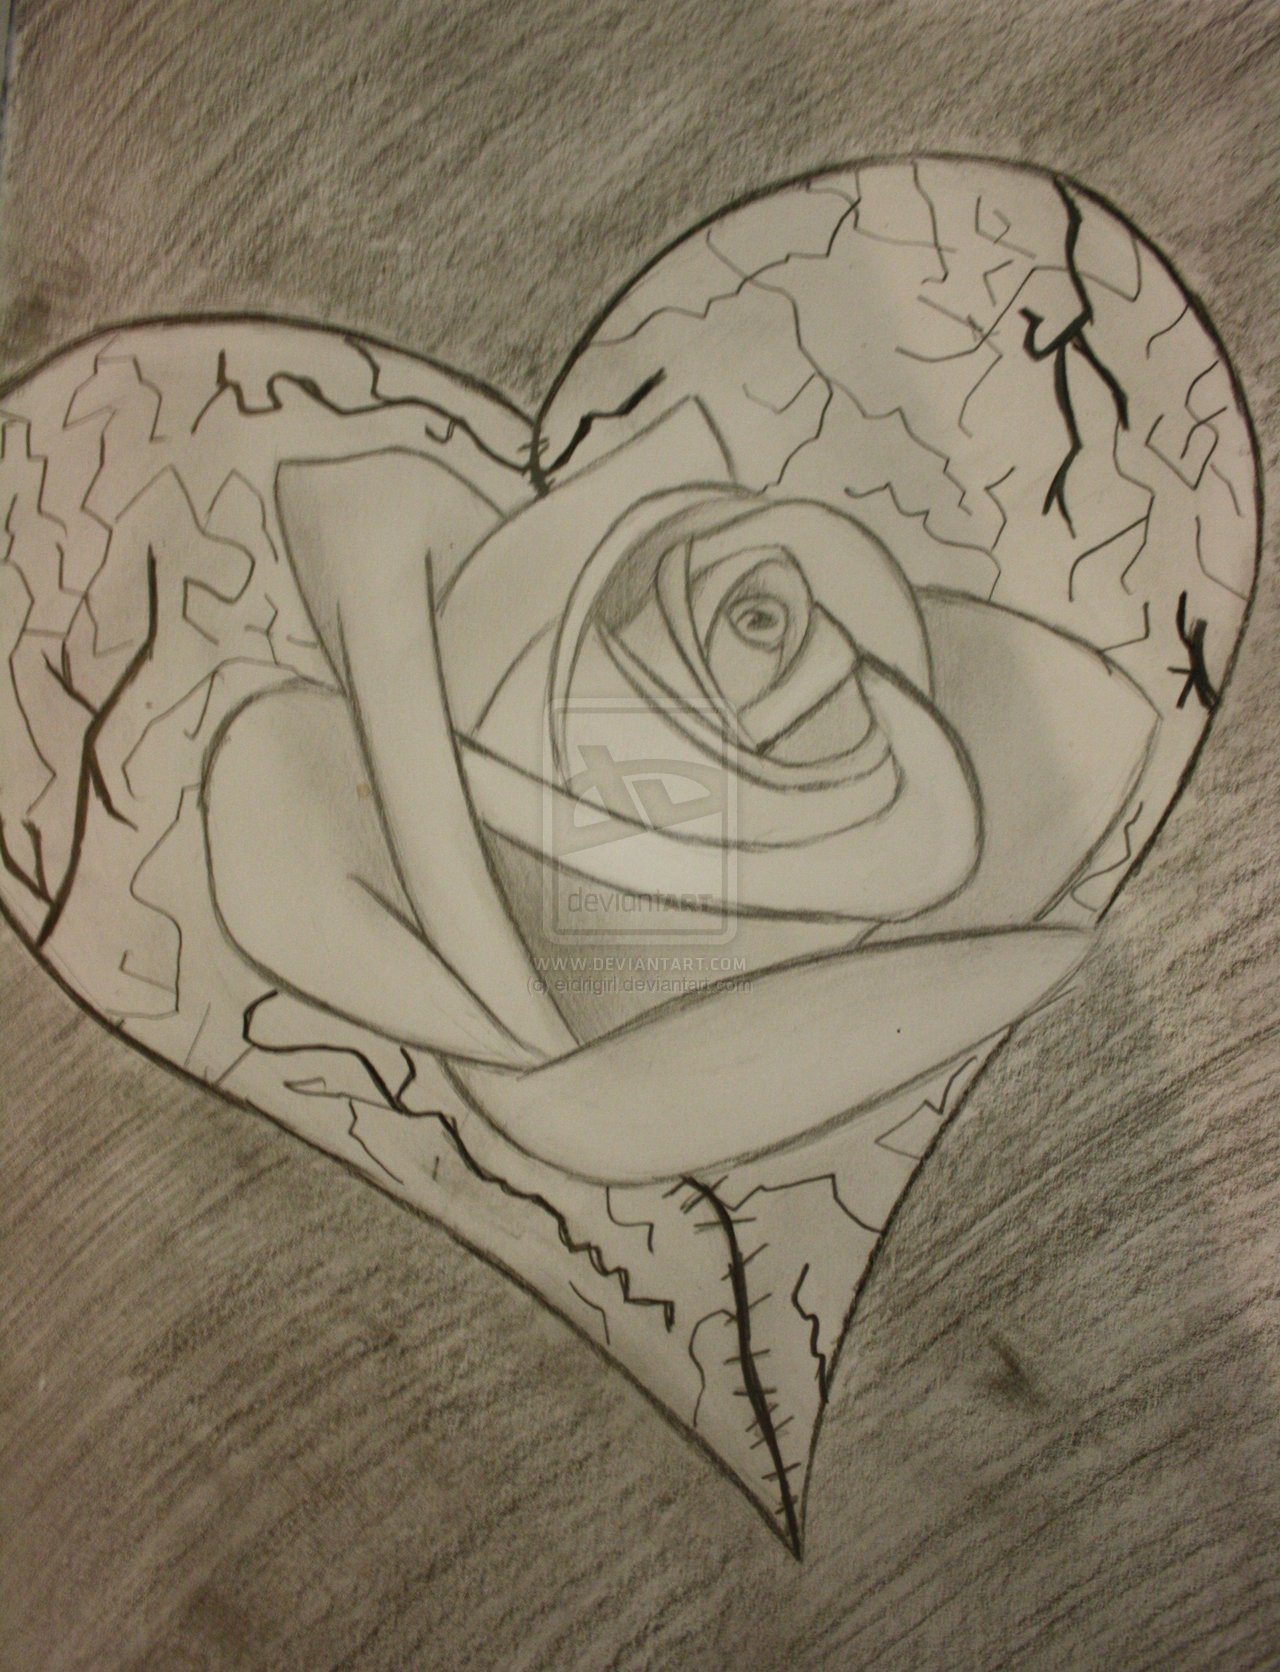 Drawn rose emo And of by rose macabre